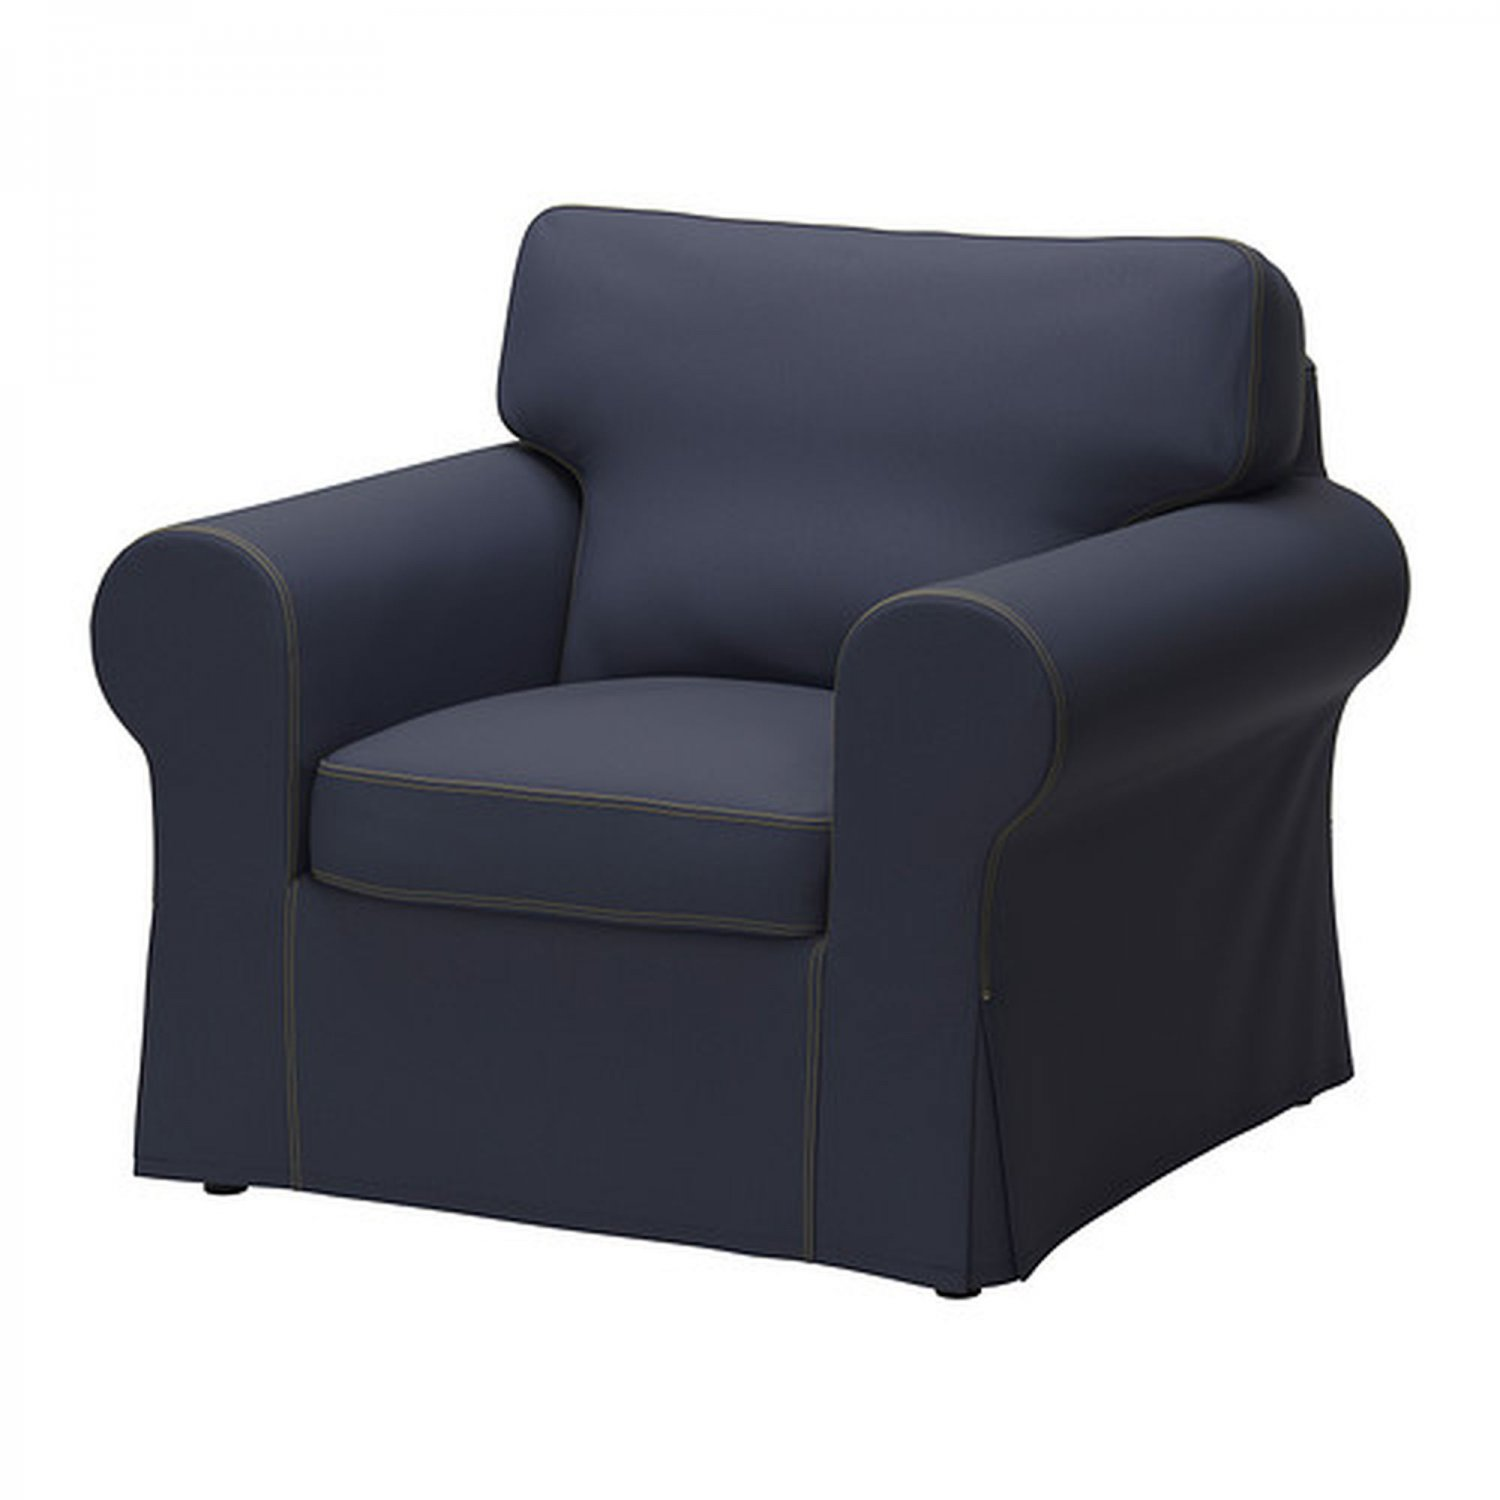 ikea tullsta chair covers uk mat for under high ektorp armchair cover slipcover jonsboda blue denim